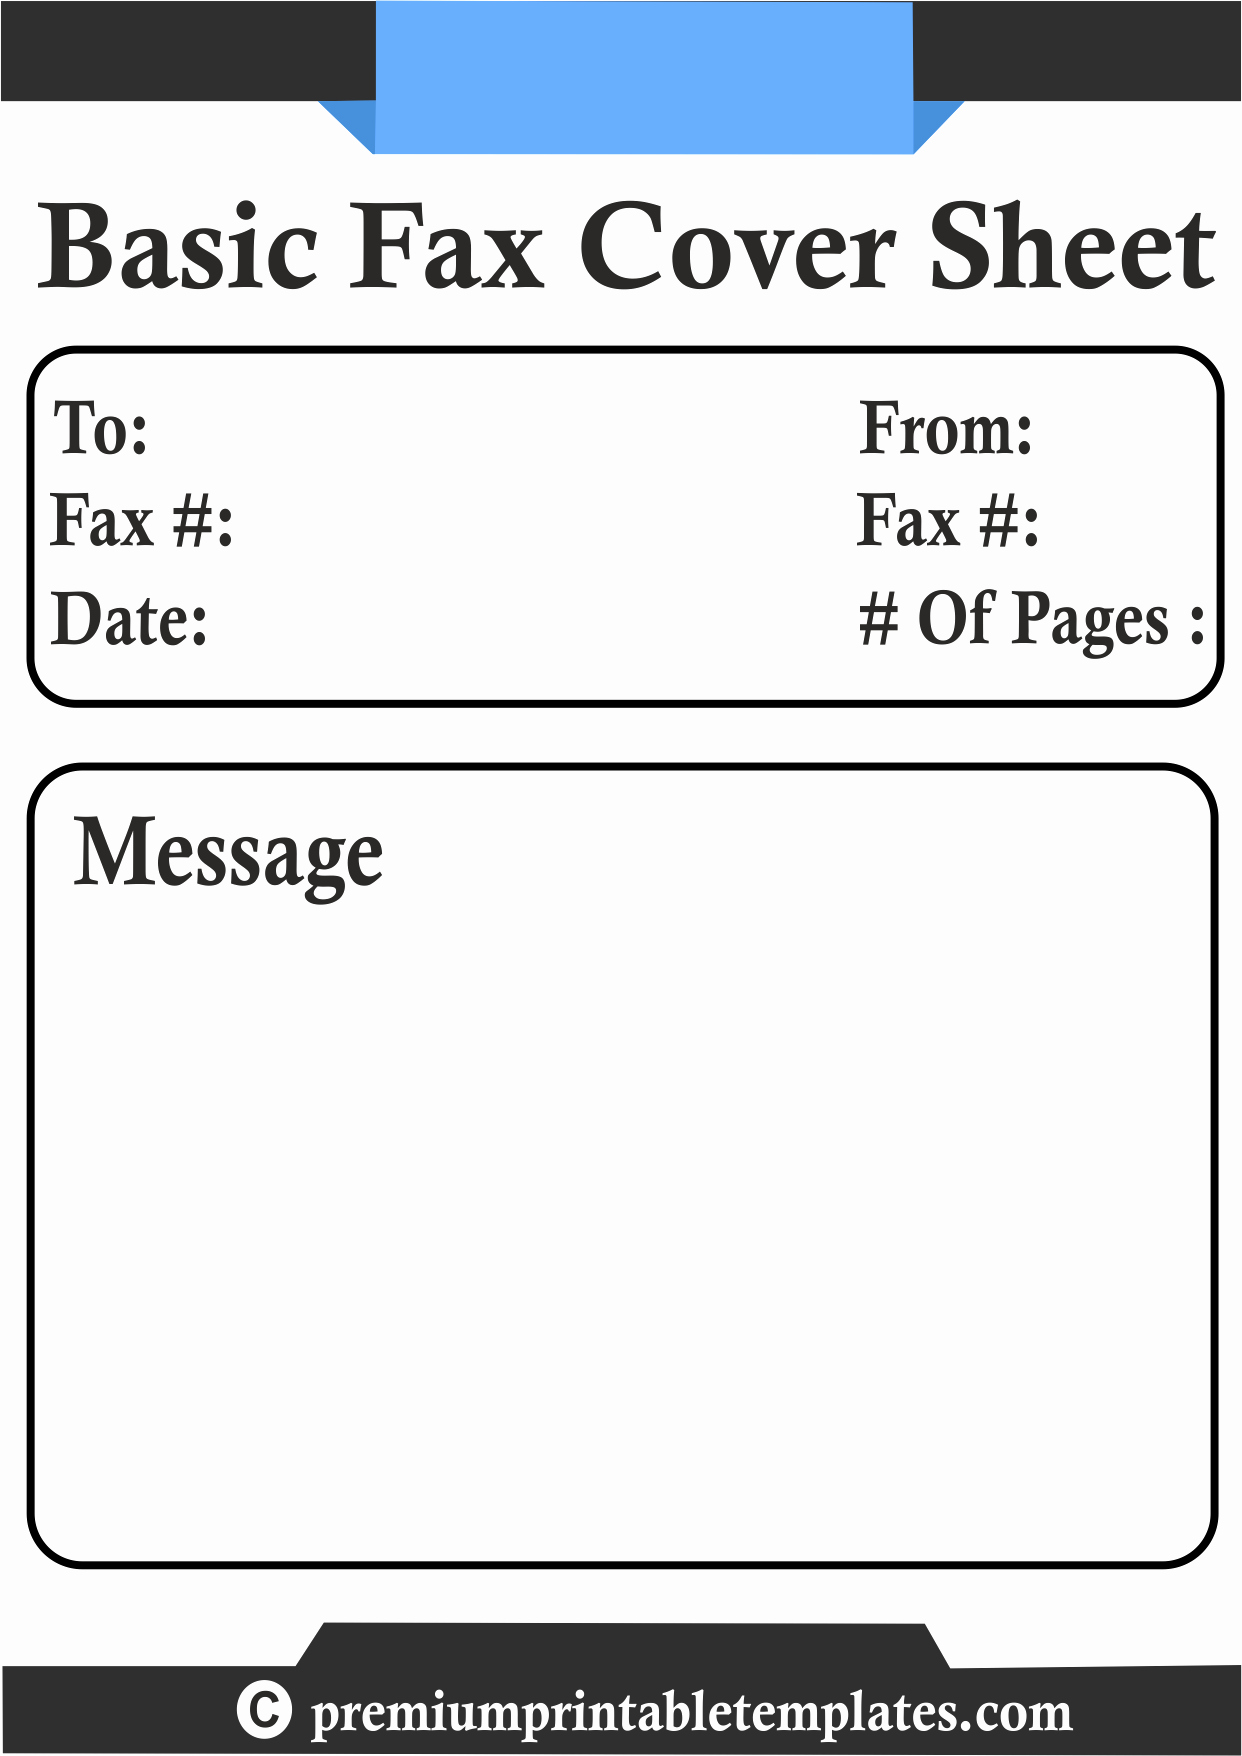 Basic Fax Cover Sheet Template Fresh Basic Fax Cover Sheet Template – Premium Printable Templates